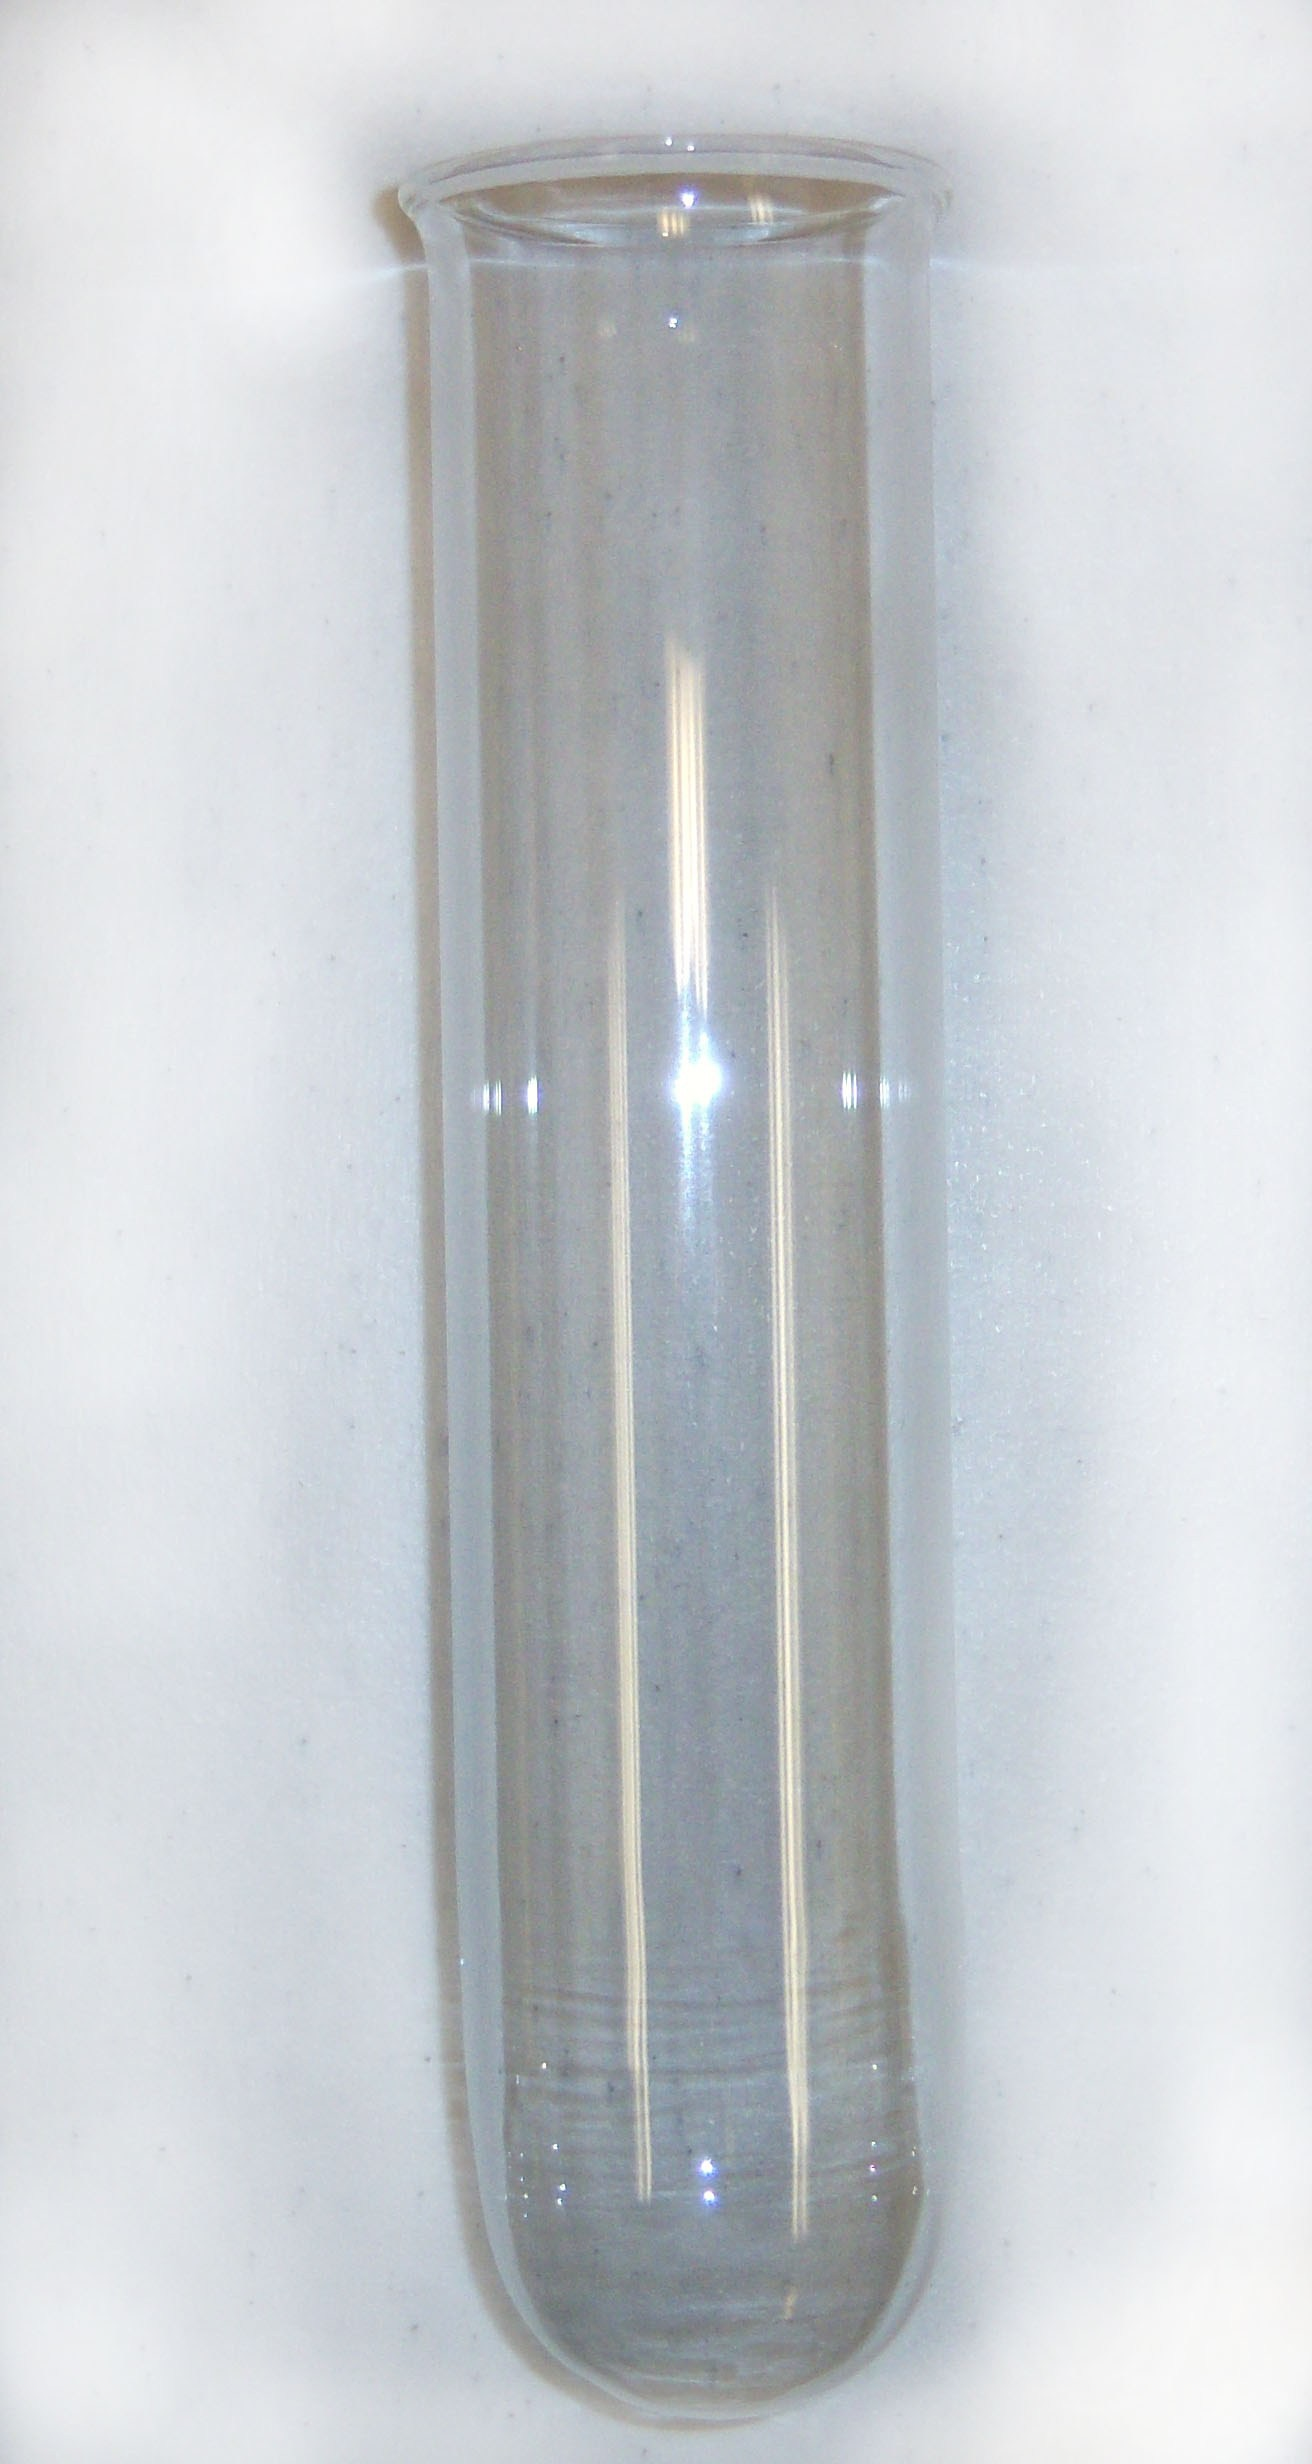 Rain Gauge Vial Replacement (VRG6, VRG7, VRG9)